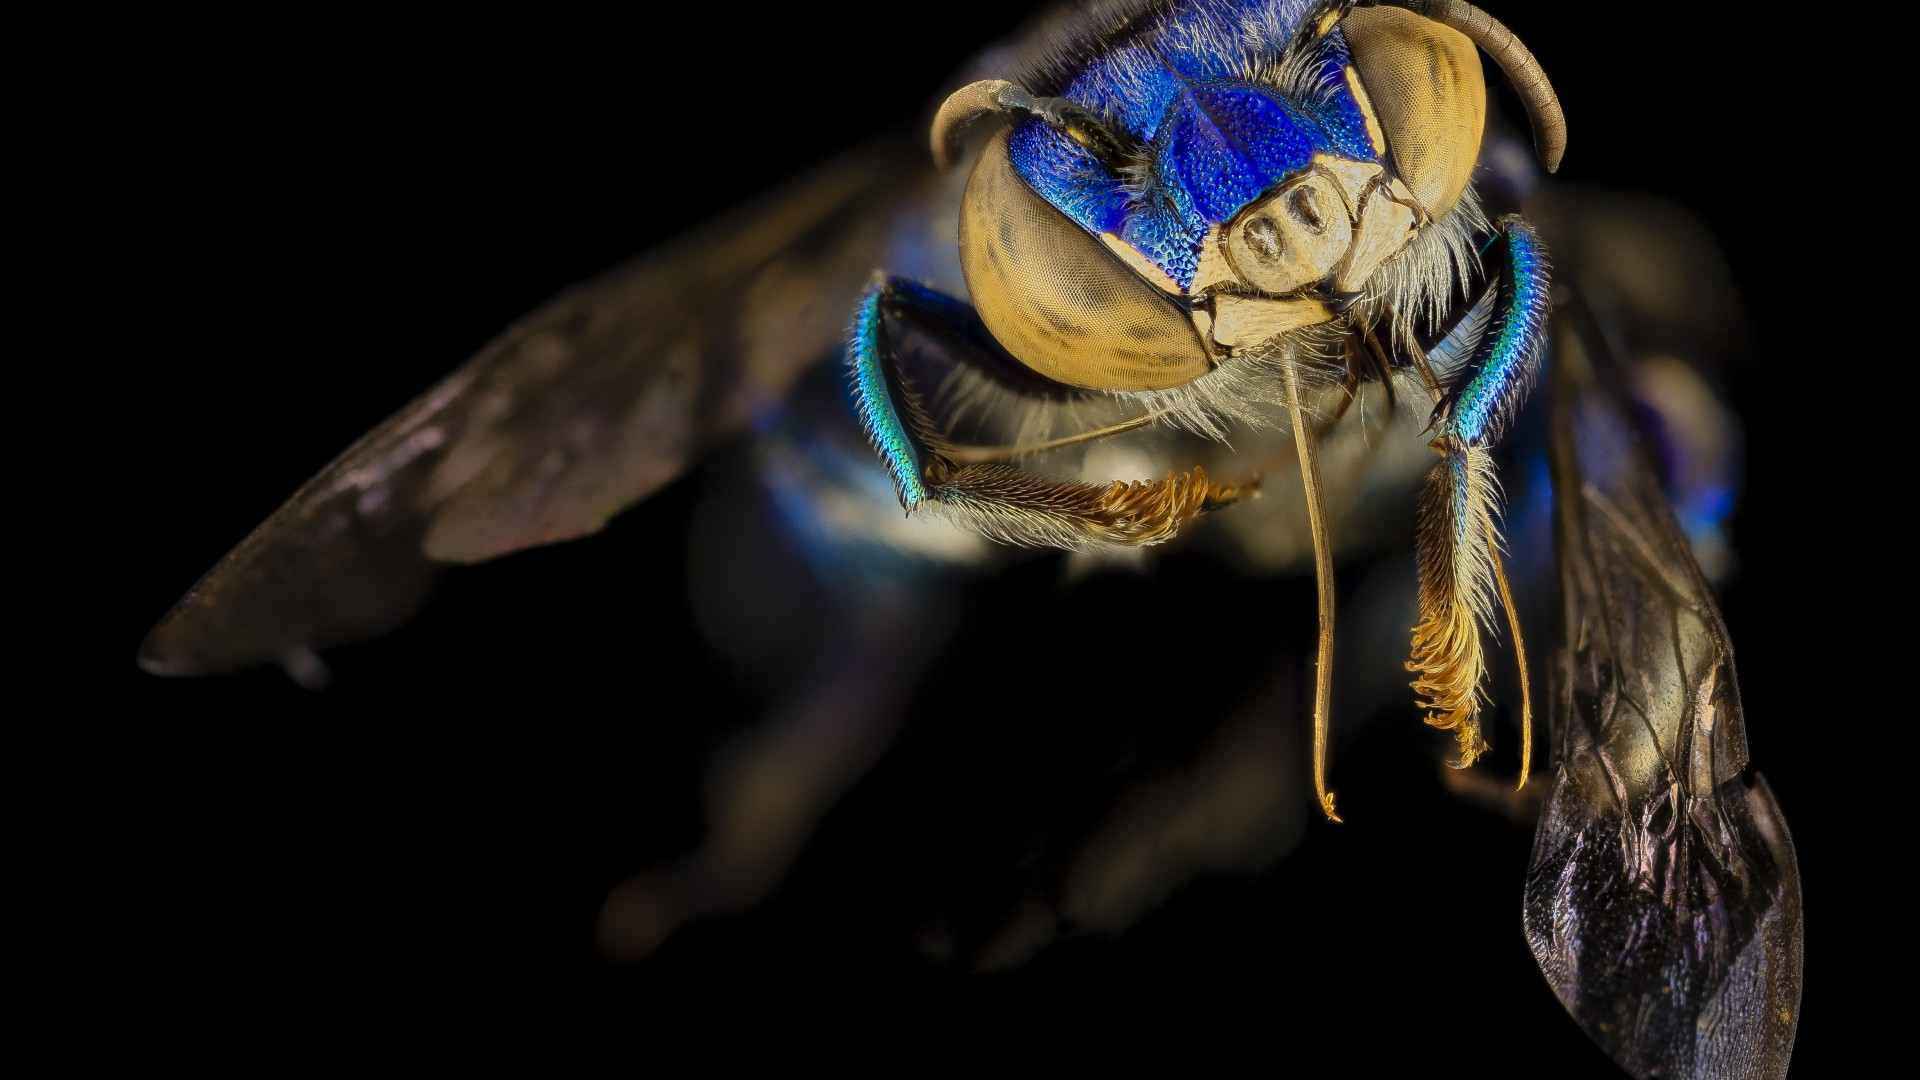 Euglossa Orchid Bee Wallpaper, Animals / Insects: Euglossa